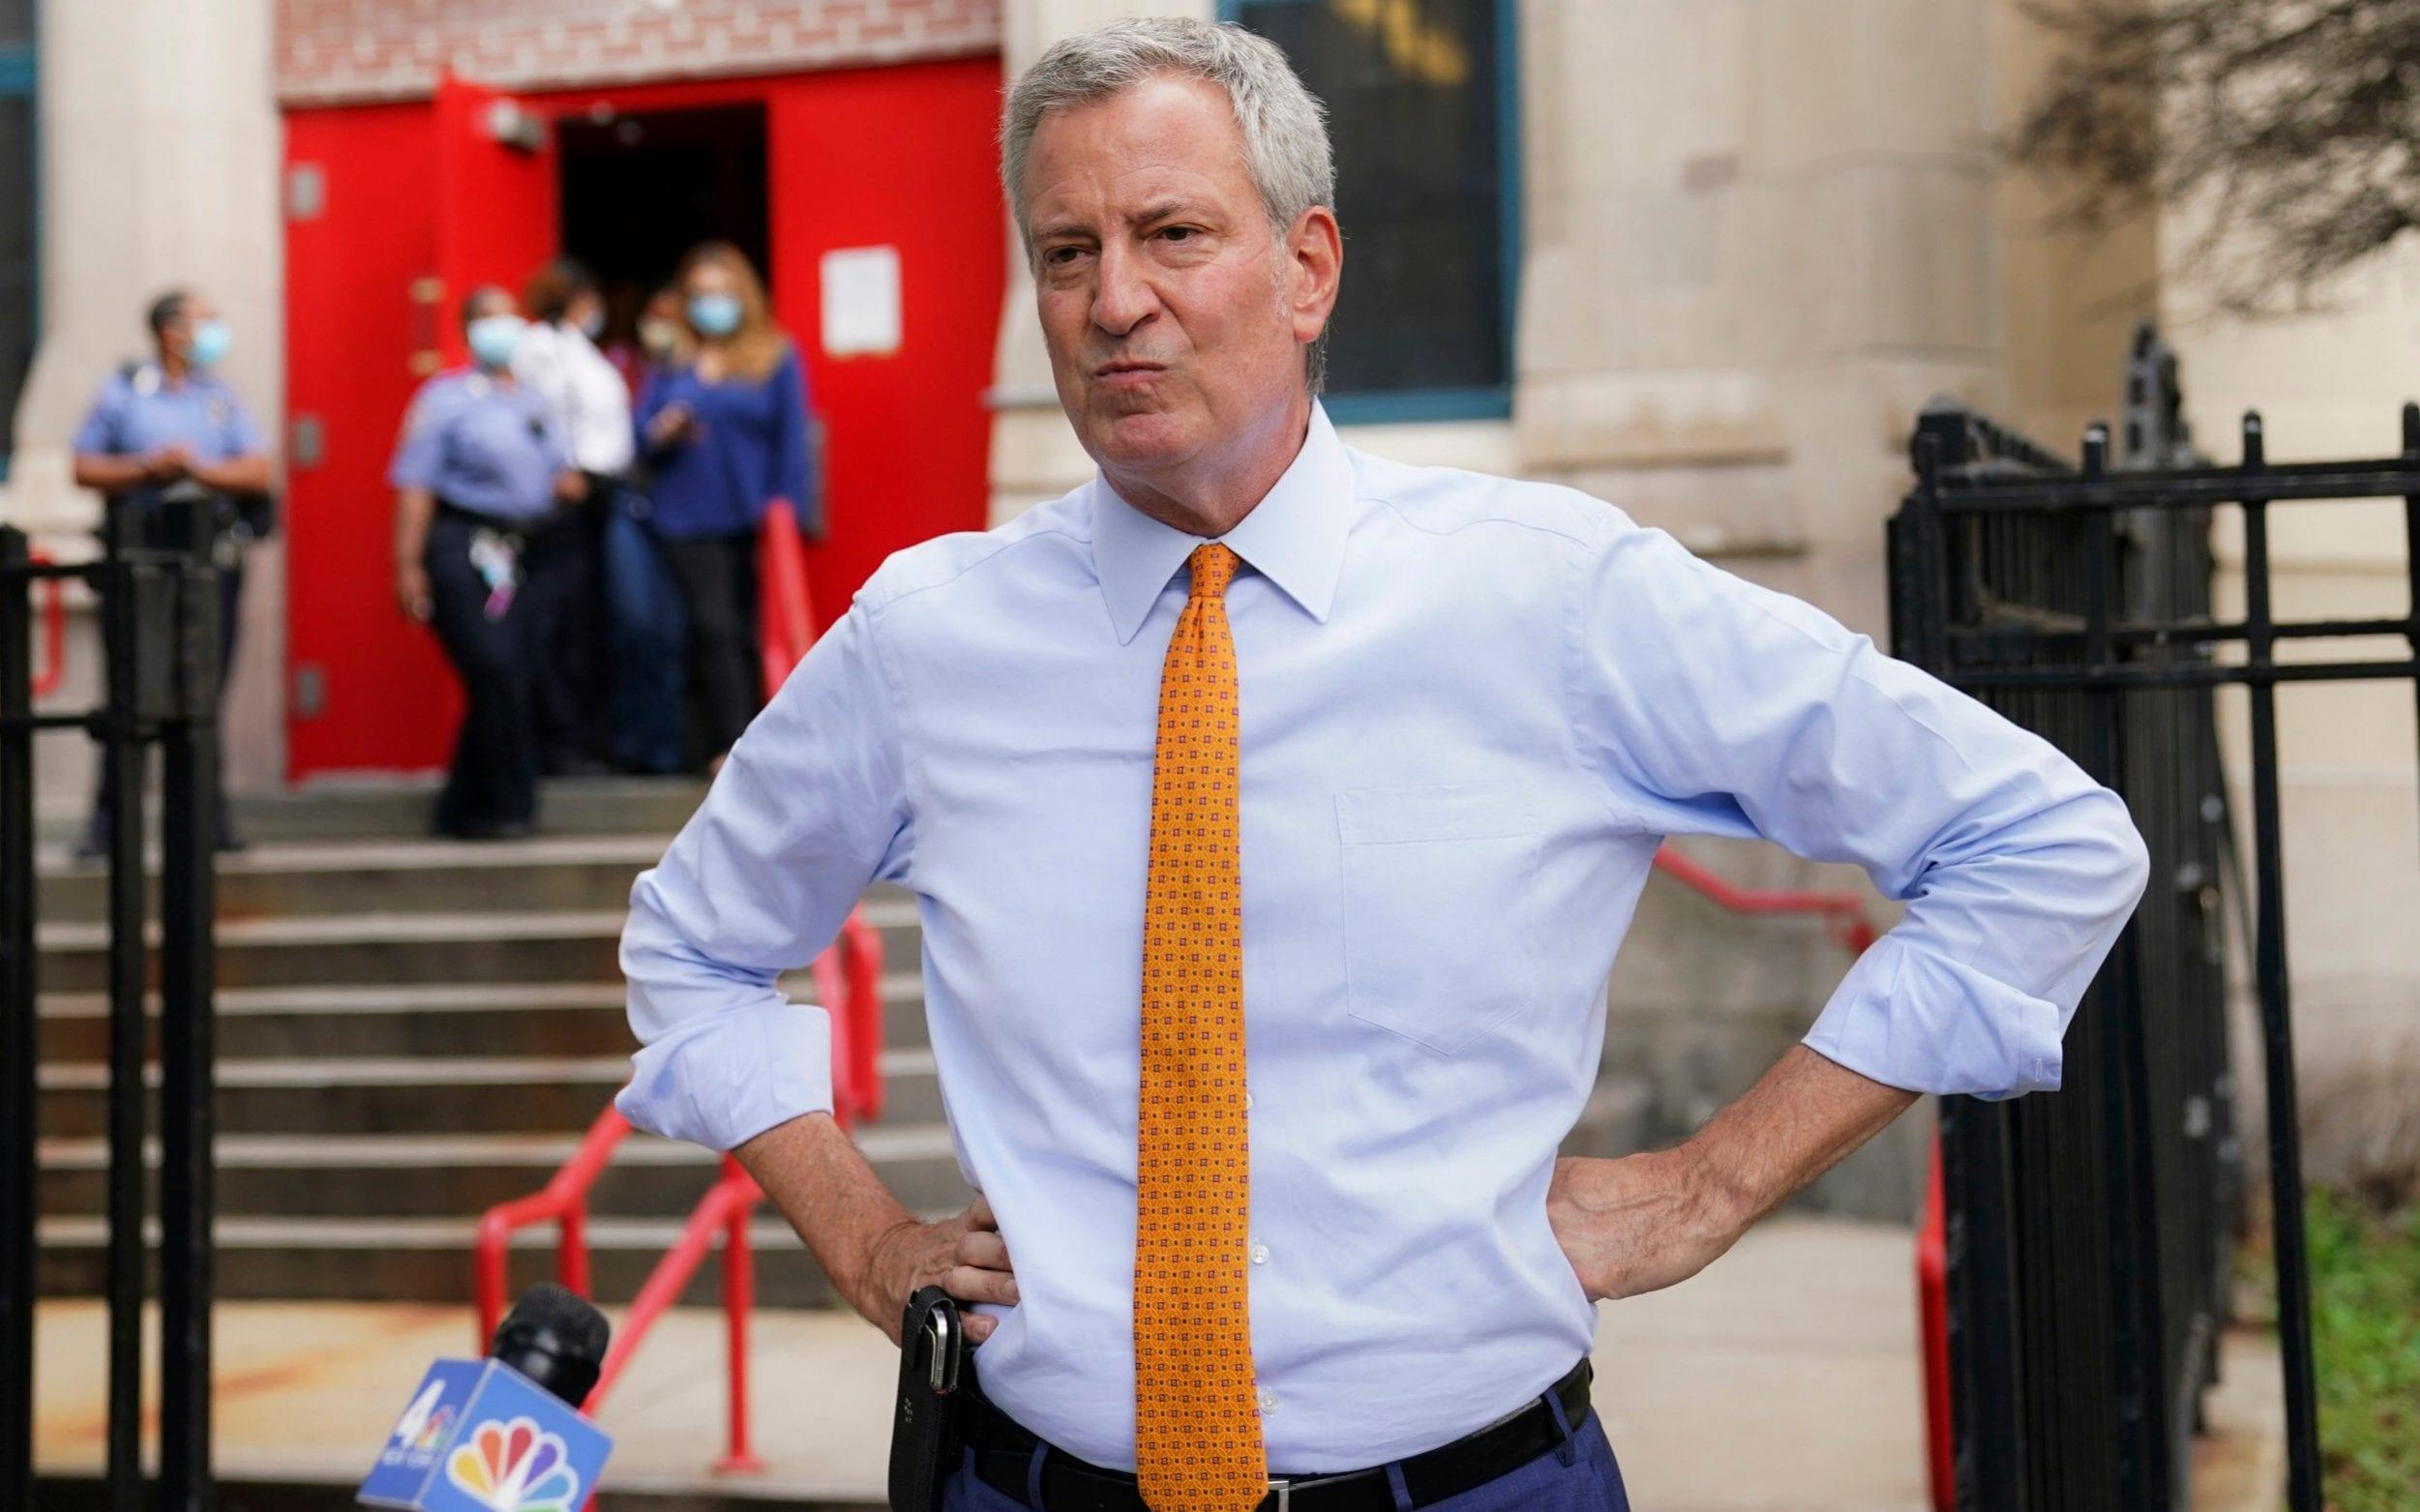 Mr de Blasio announced that all of his staff, including his wife and himself, must take a week of unpaid leave - John Minchillo /AP